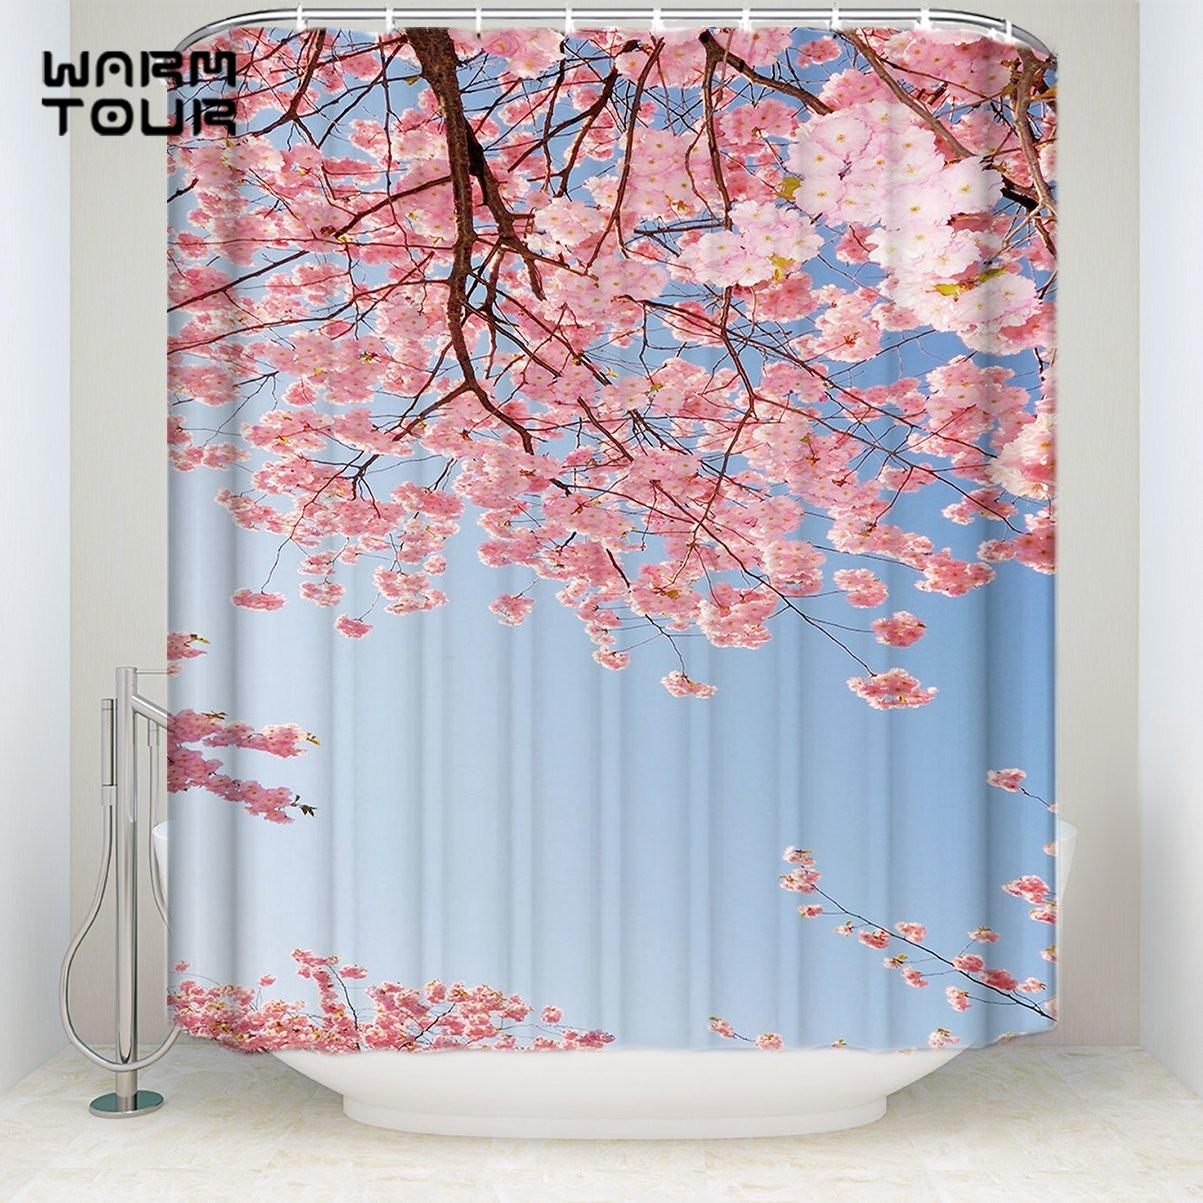 2019 Bath Shower Curtains 48 X 72 Inches Beautiful Sakura Cheery Blossom Sky Mildew Resistant Bathroom Decor Sets With Hooks From Waxer 2706